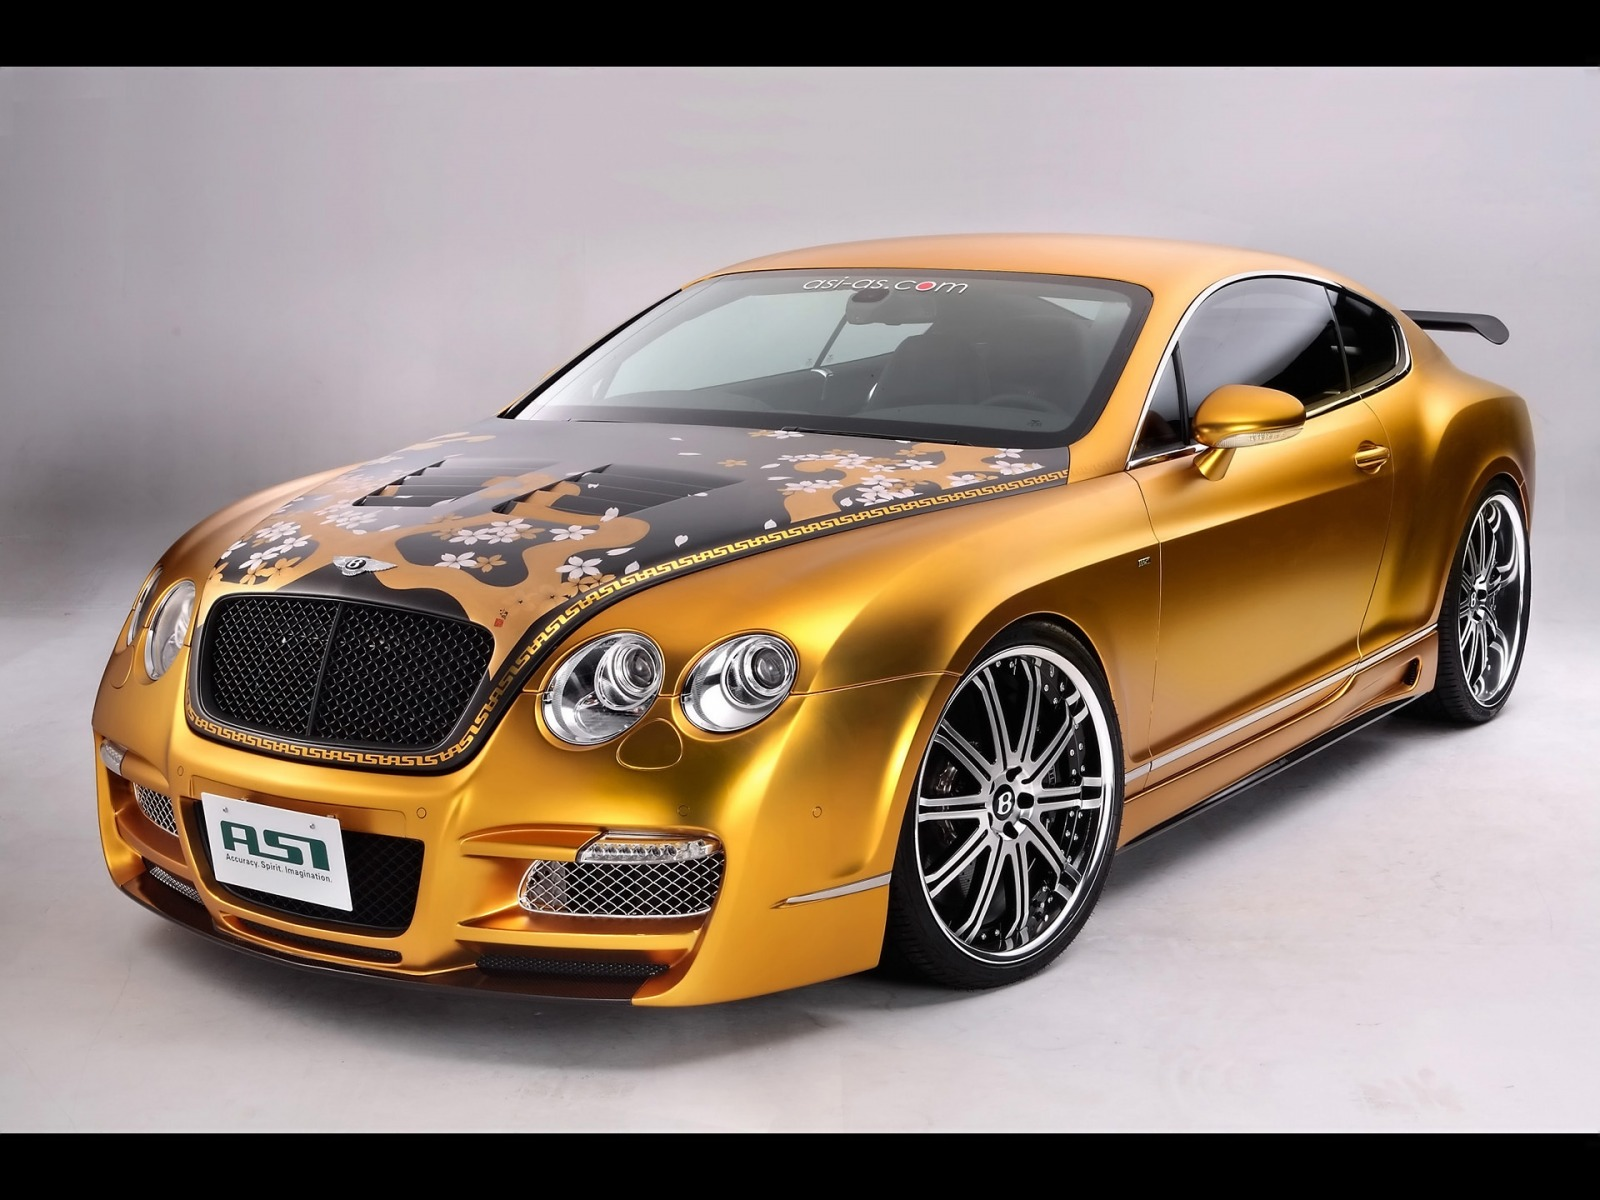 Bentley Cars photos & images 2013